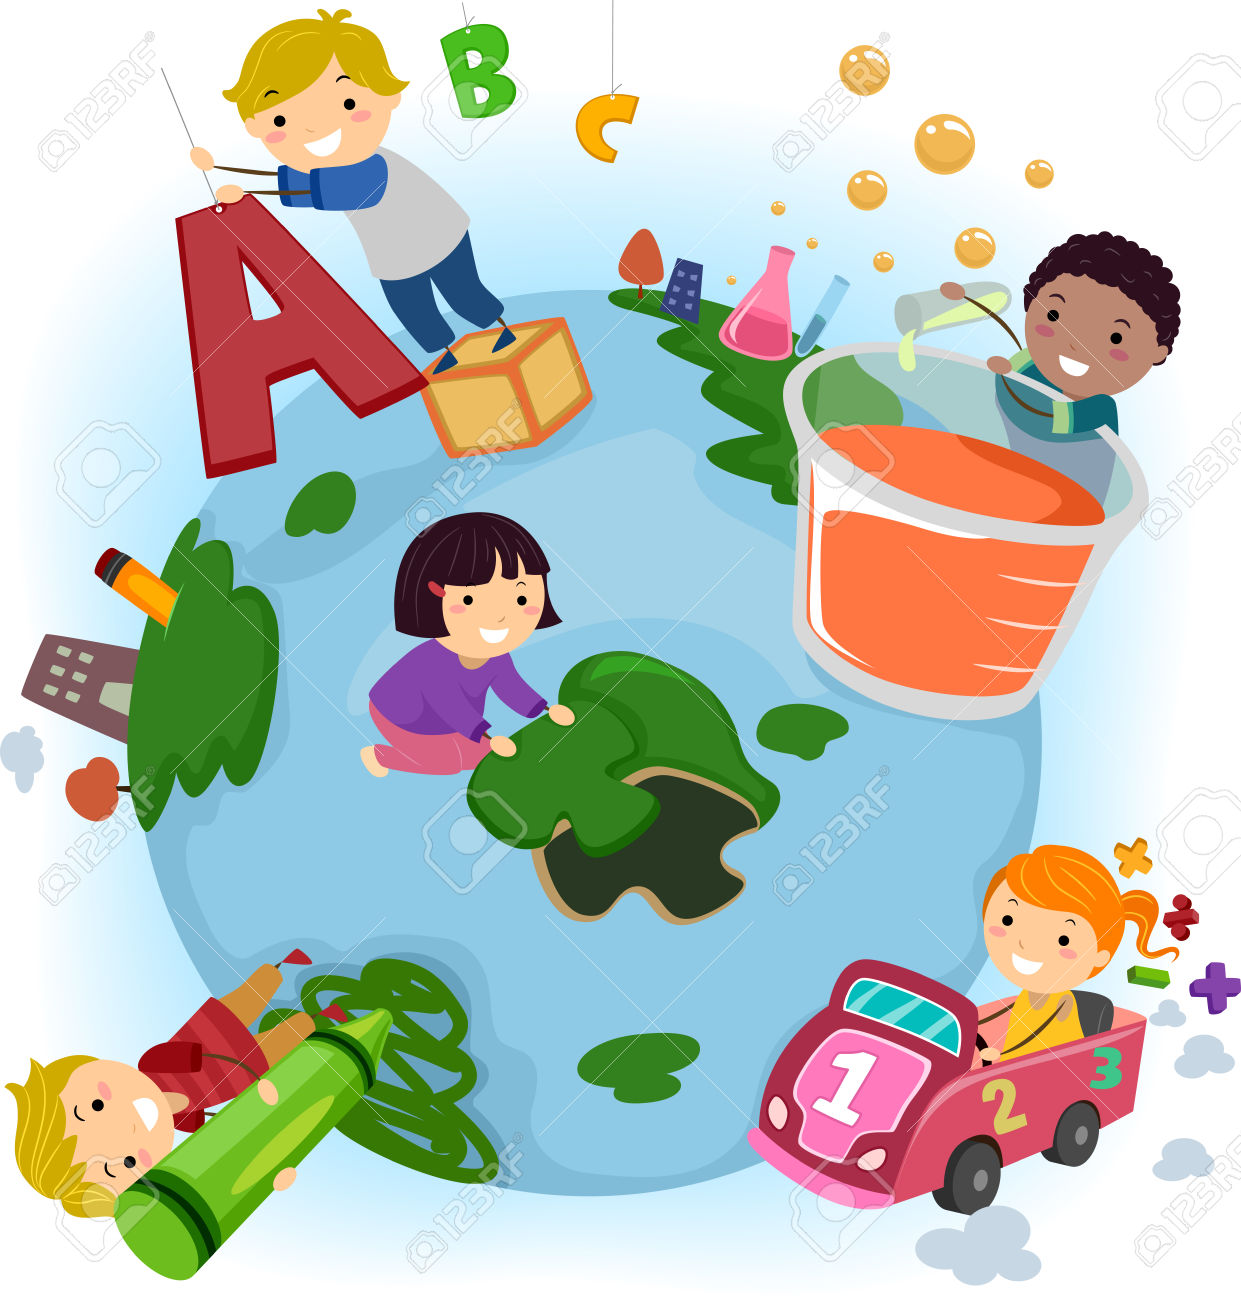 Children school activities clipart.